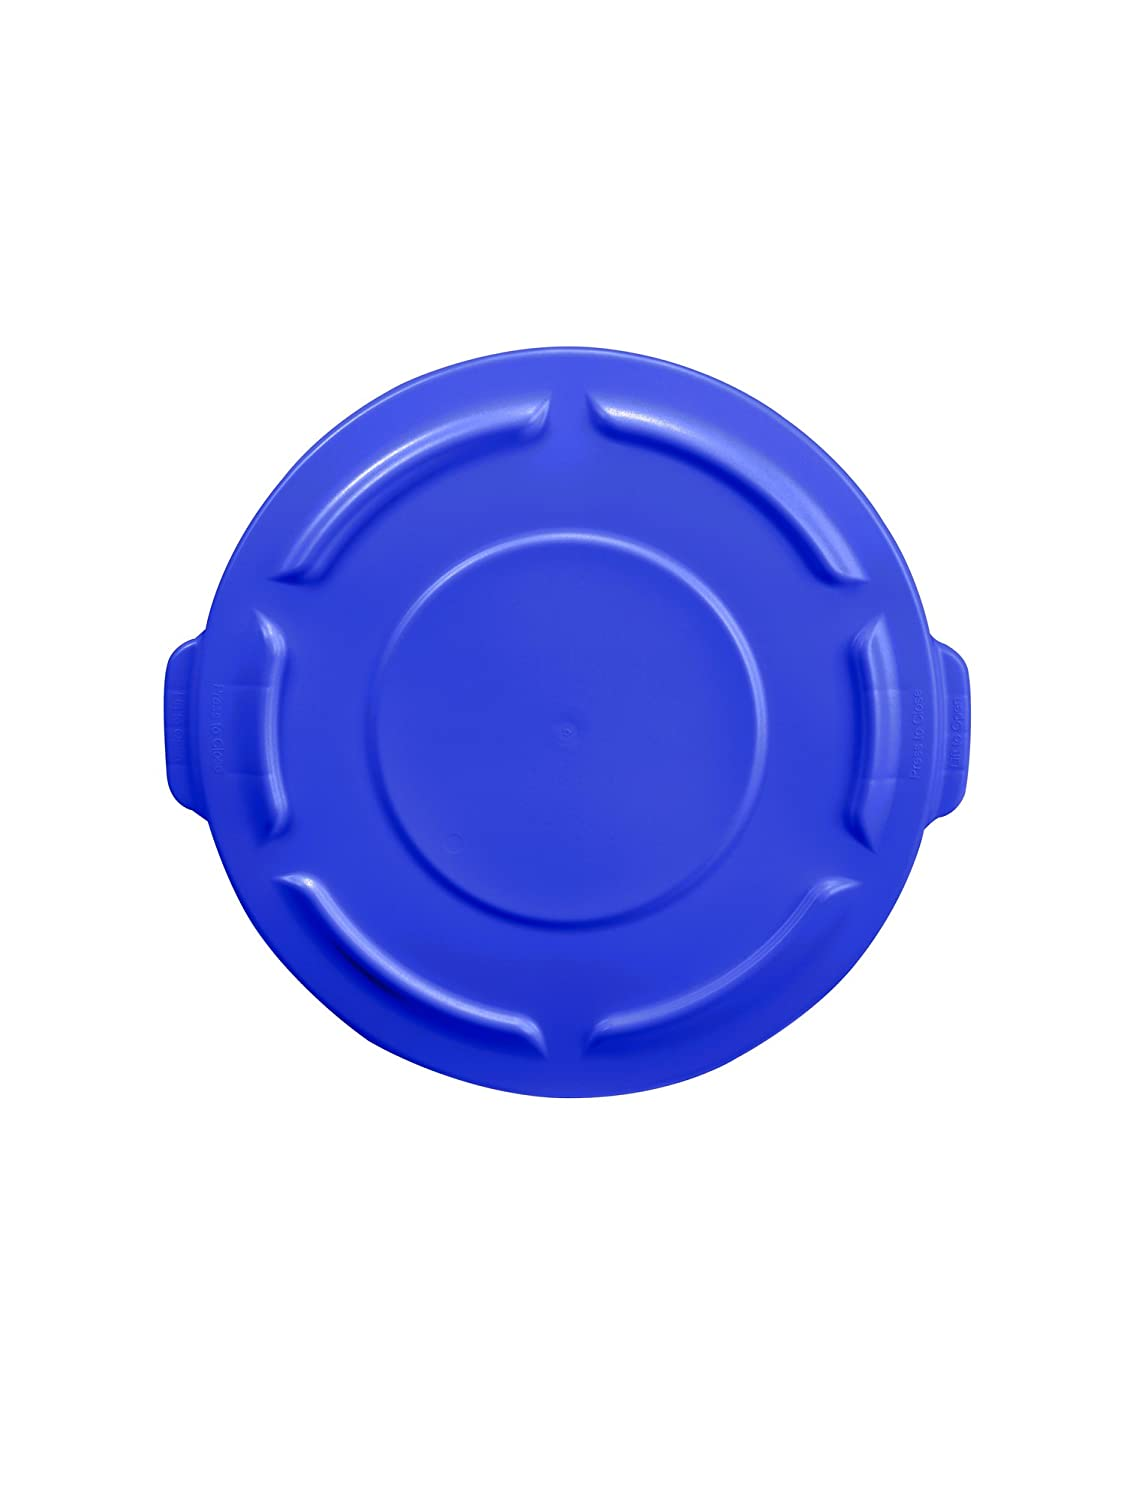 Rubbermaid Commercial 1779700 BRUTE Heavy-Duty Round Waste/Utility Container, 10-gallon Lid, Blue